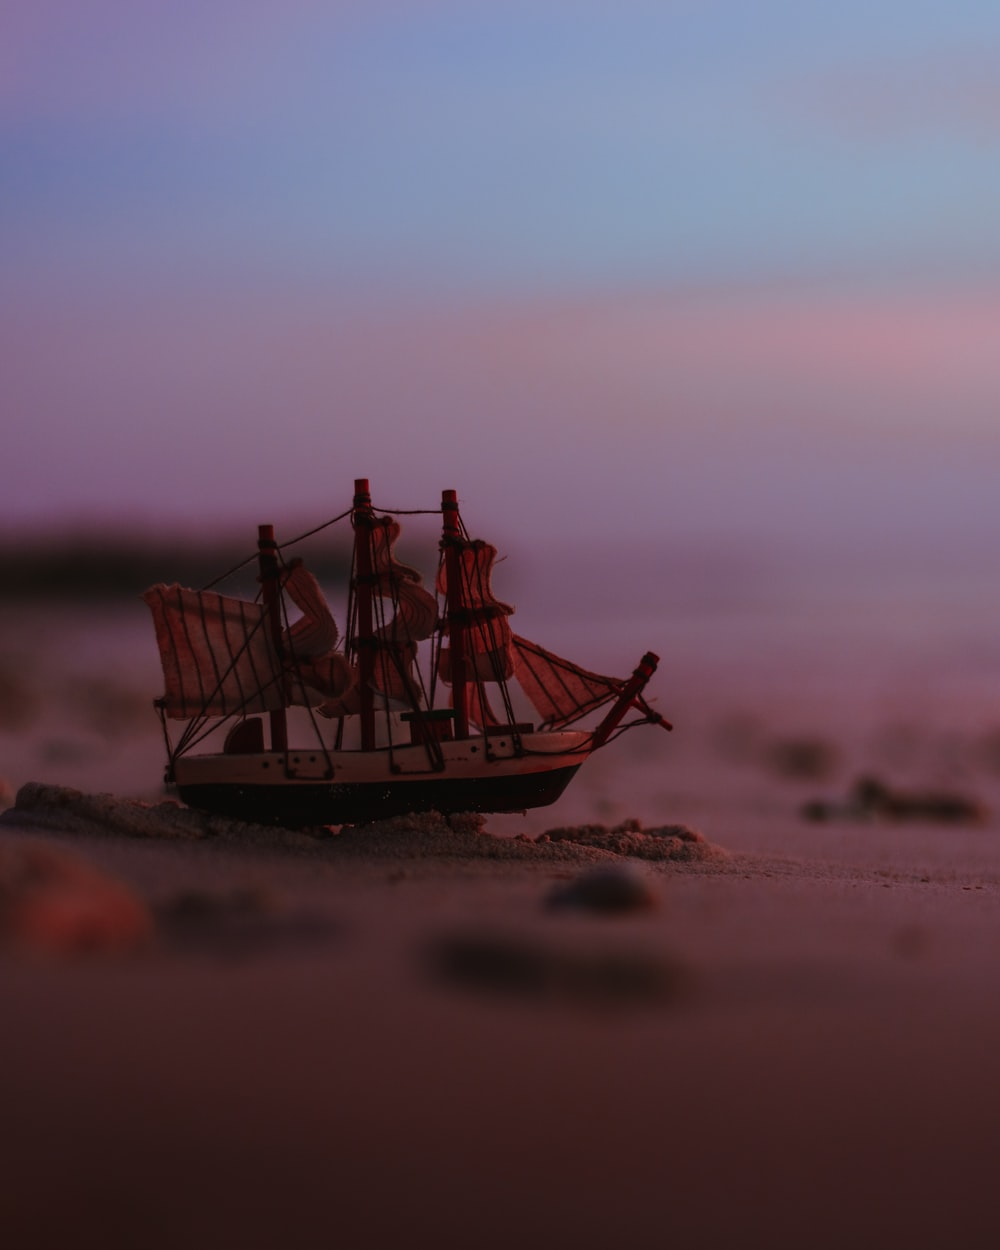 brown and white ship miniature by the seashore